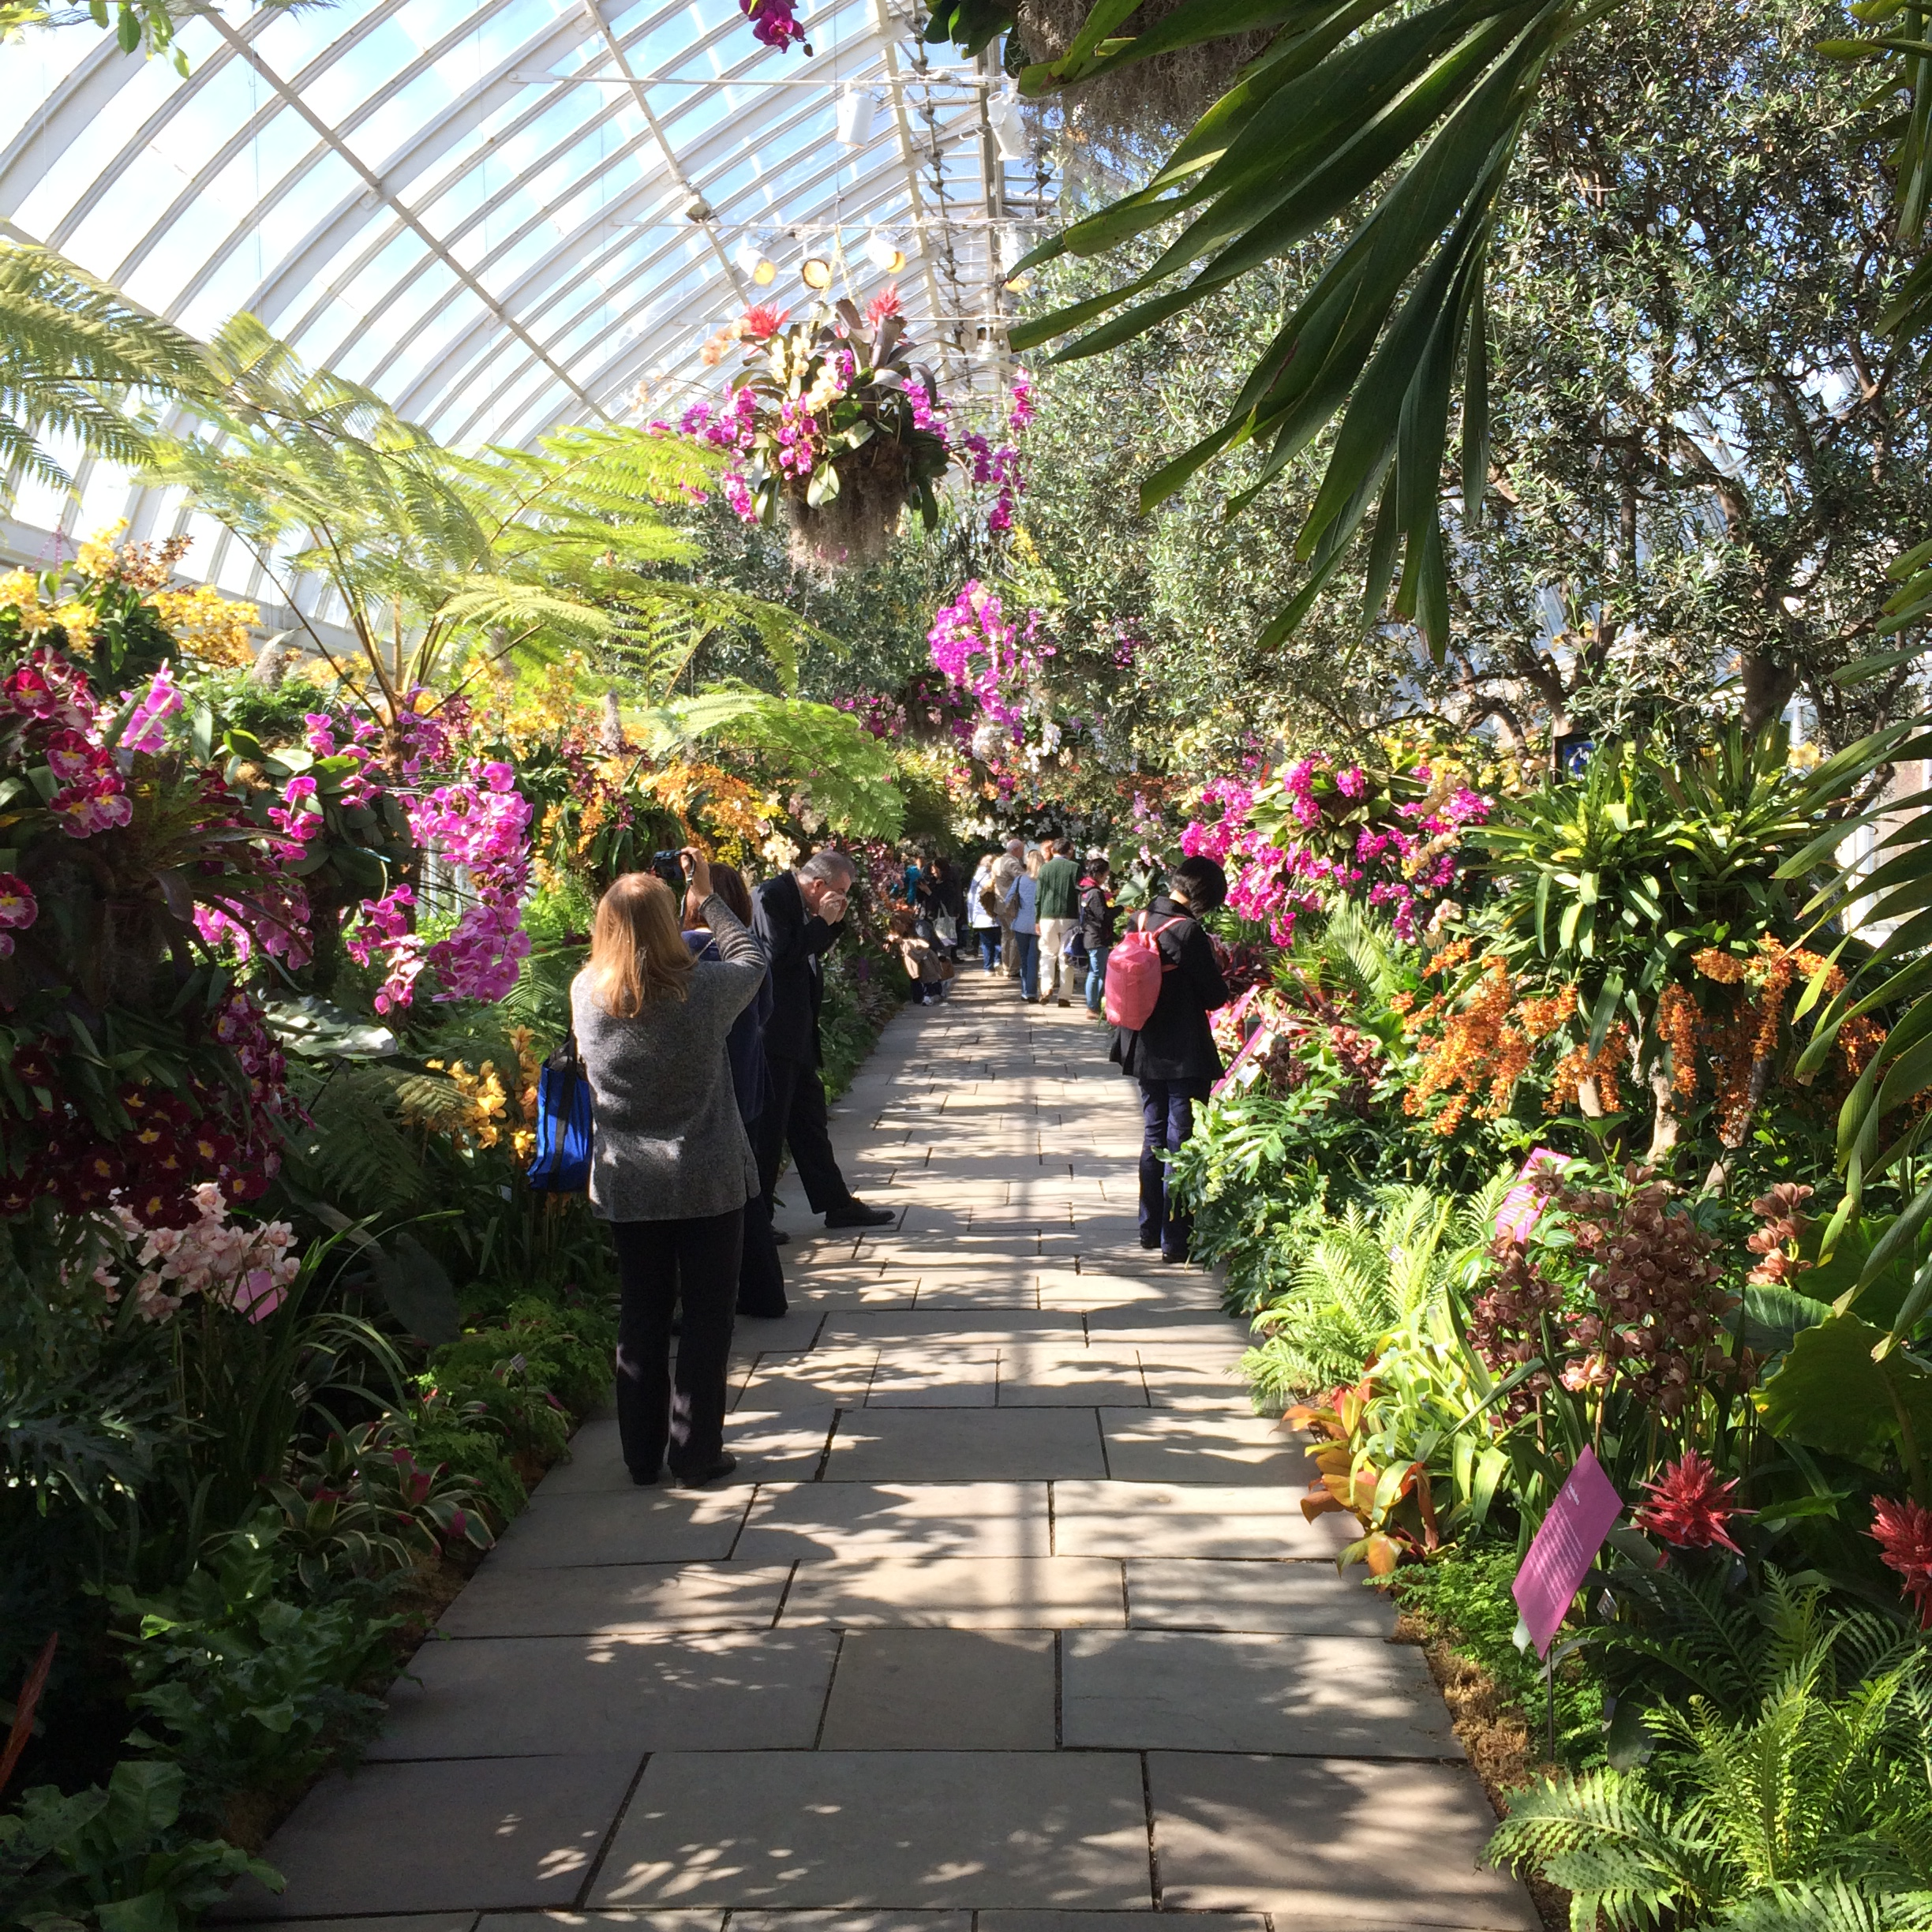 A breathtaking day at the orchid show when i entered the orchid show i didnt know where to look throughout the show are hanging flower baskets colorful column displays and the biggest flower mozeypictures Gallery